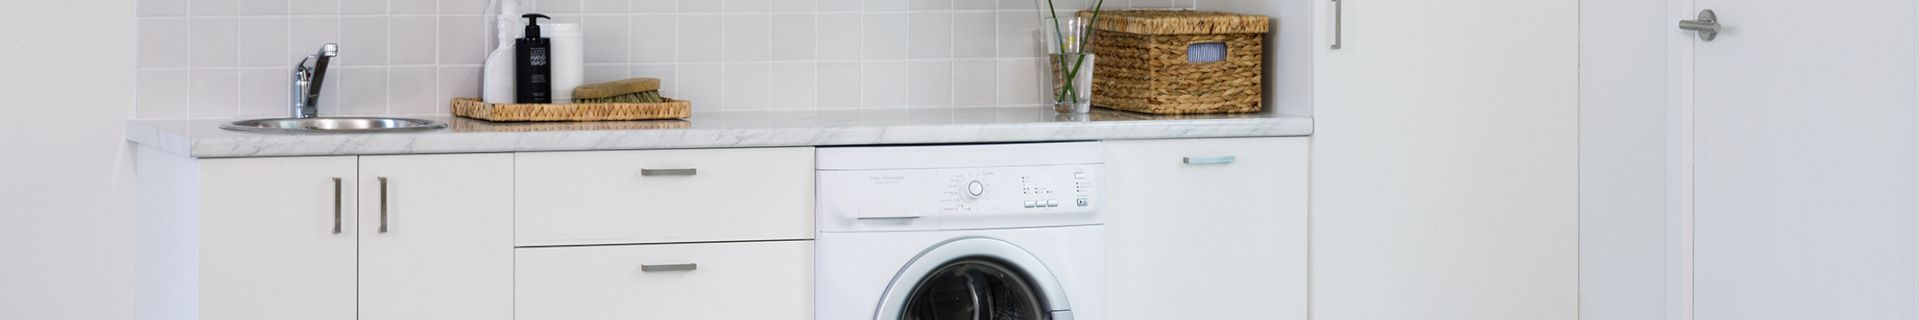 Laundry with washing machine and cupboards.